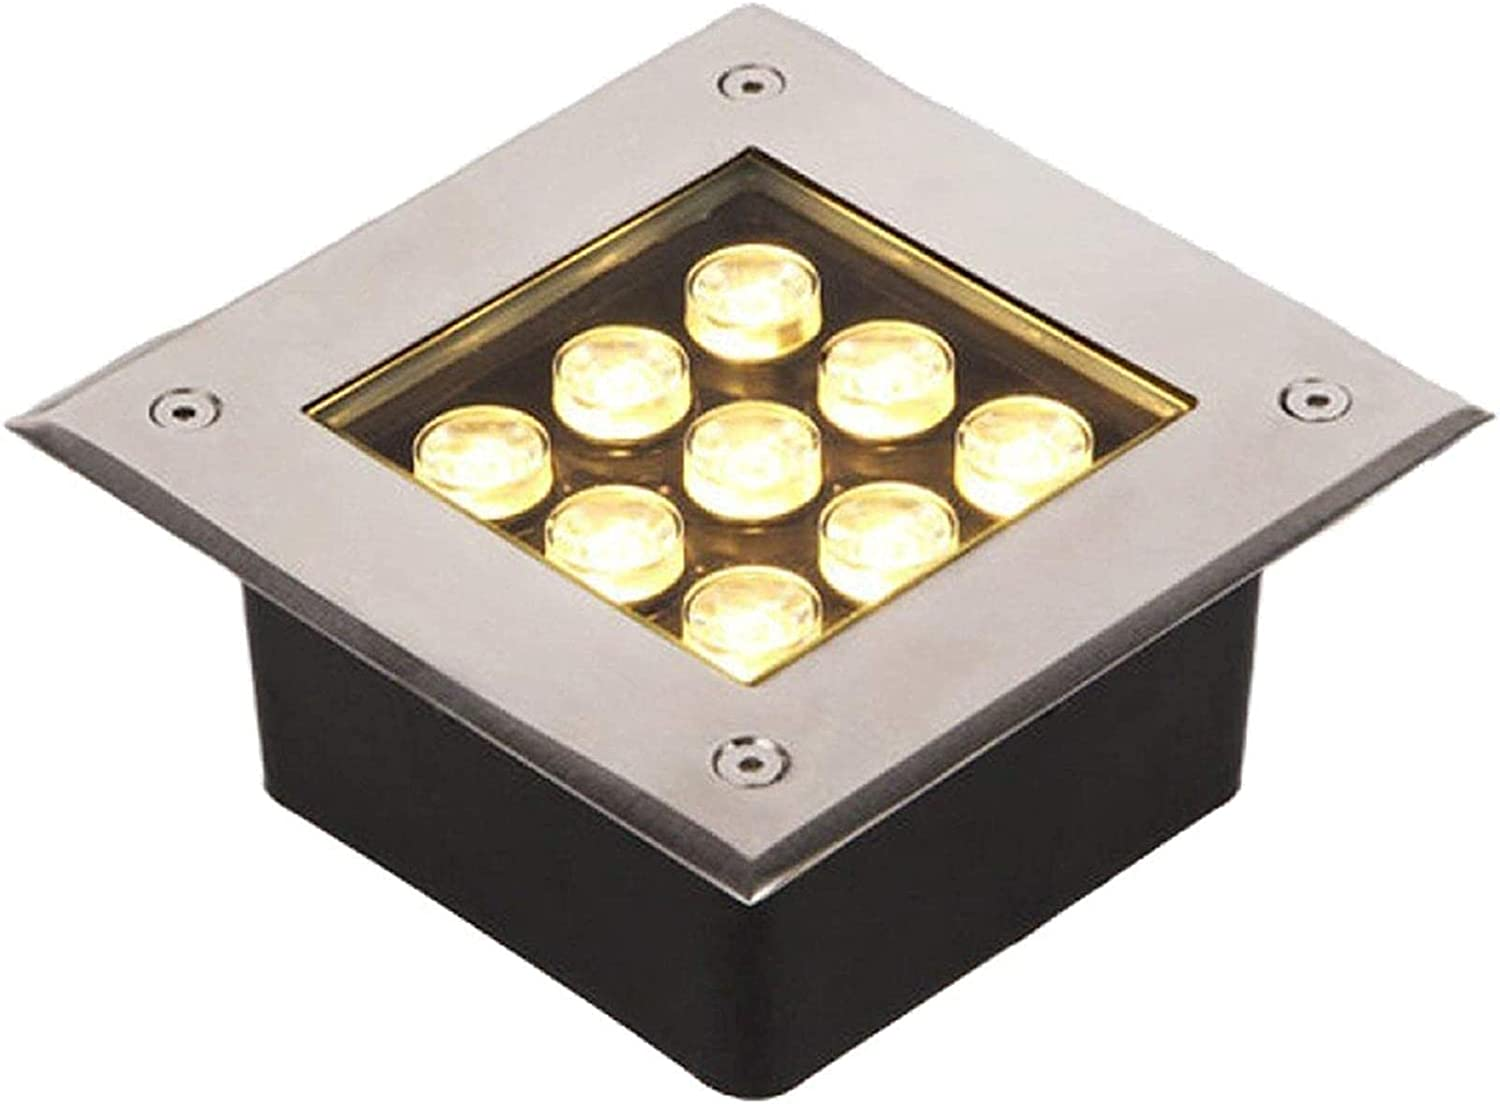 MWKLW LED Safety and trust Outdoor Floor Light Underground Waterproof Lights 9W Detroit Mall